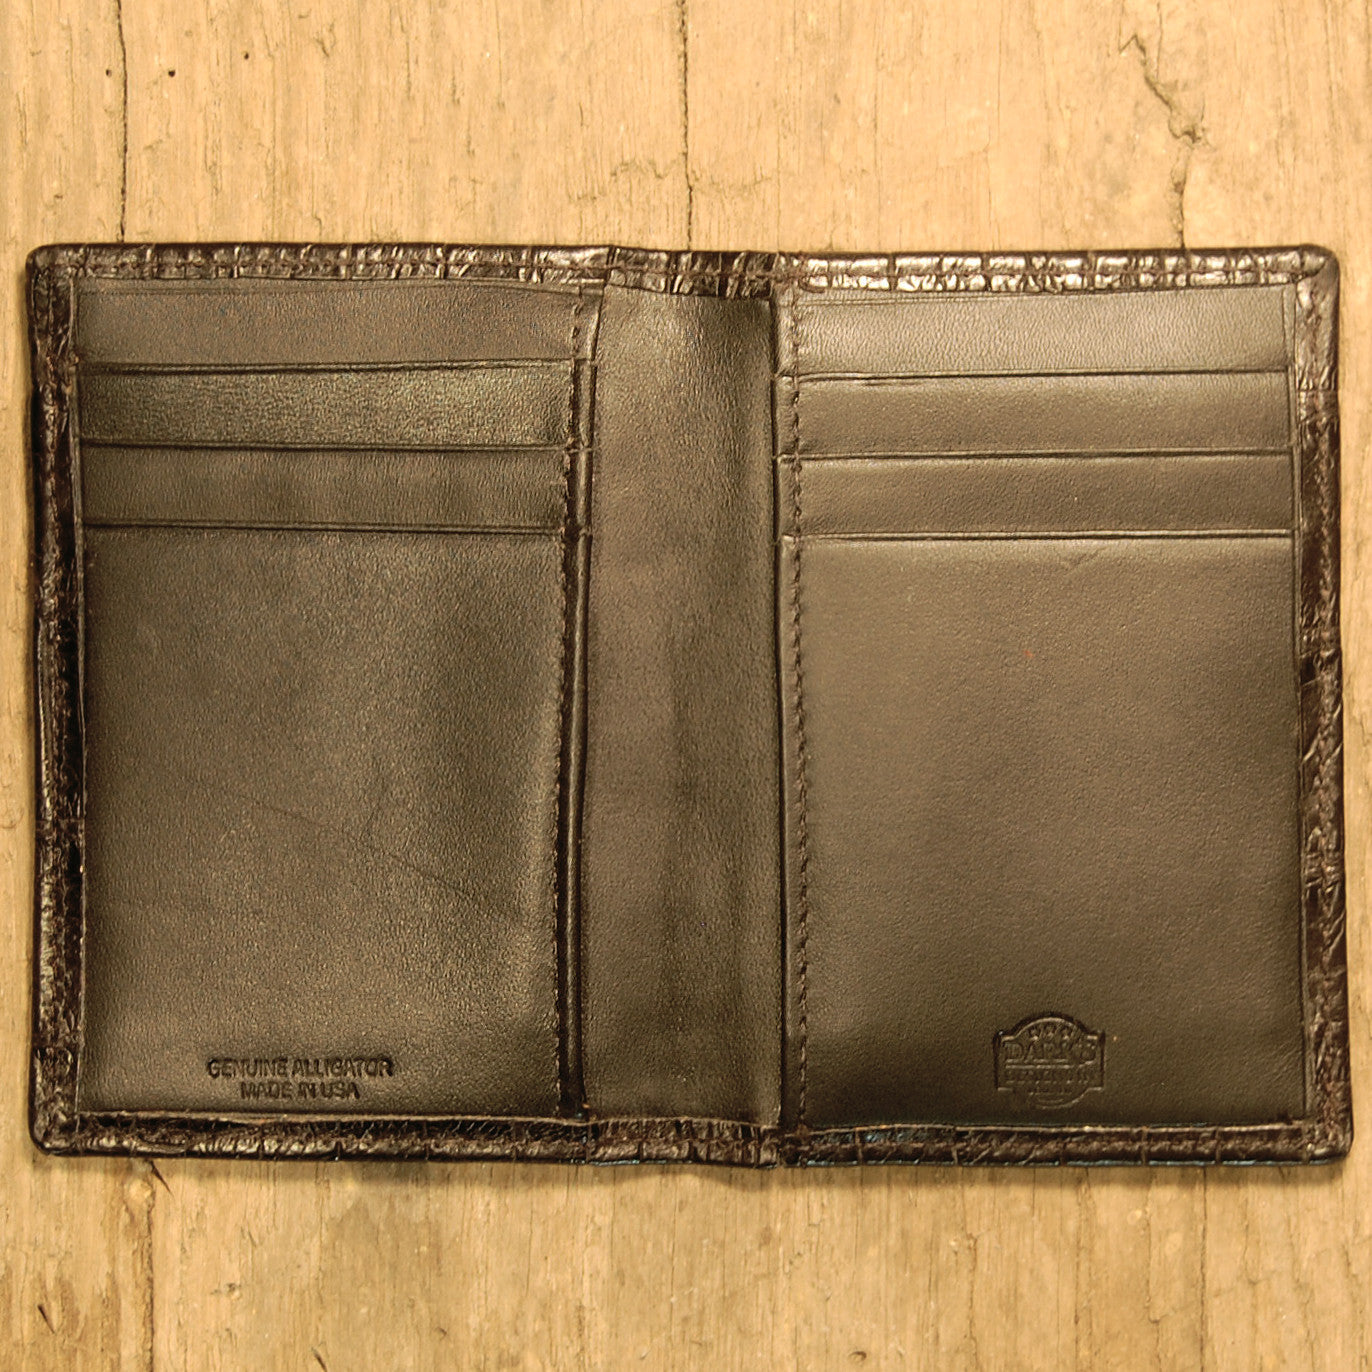 Dark's Leather Executive Card Case in Alligator Black, Interior